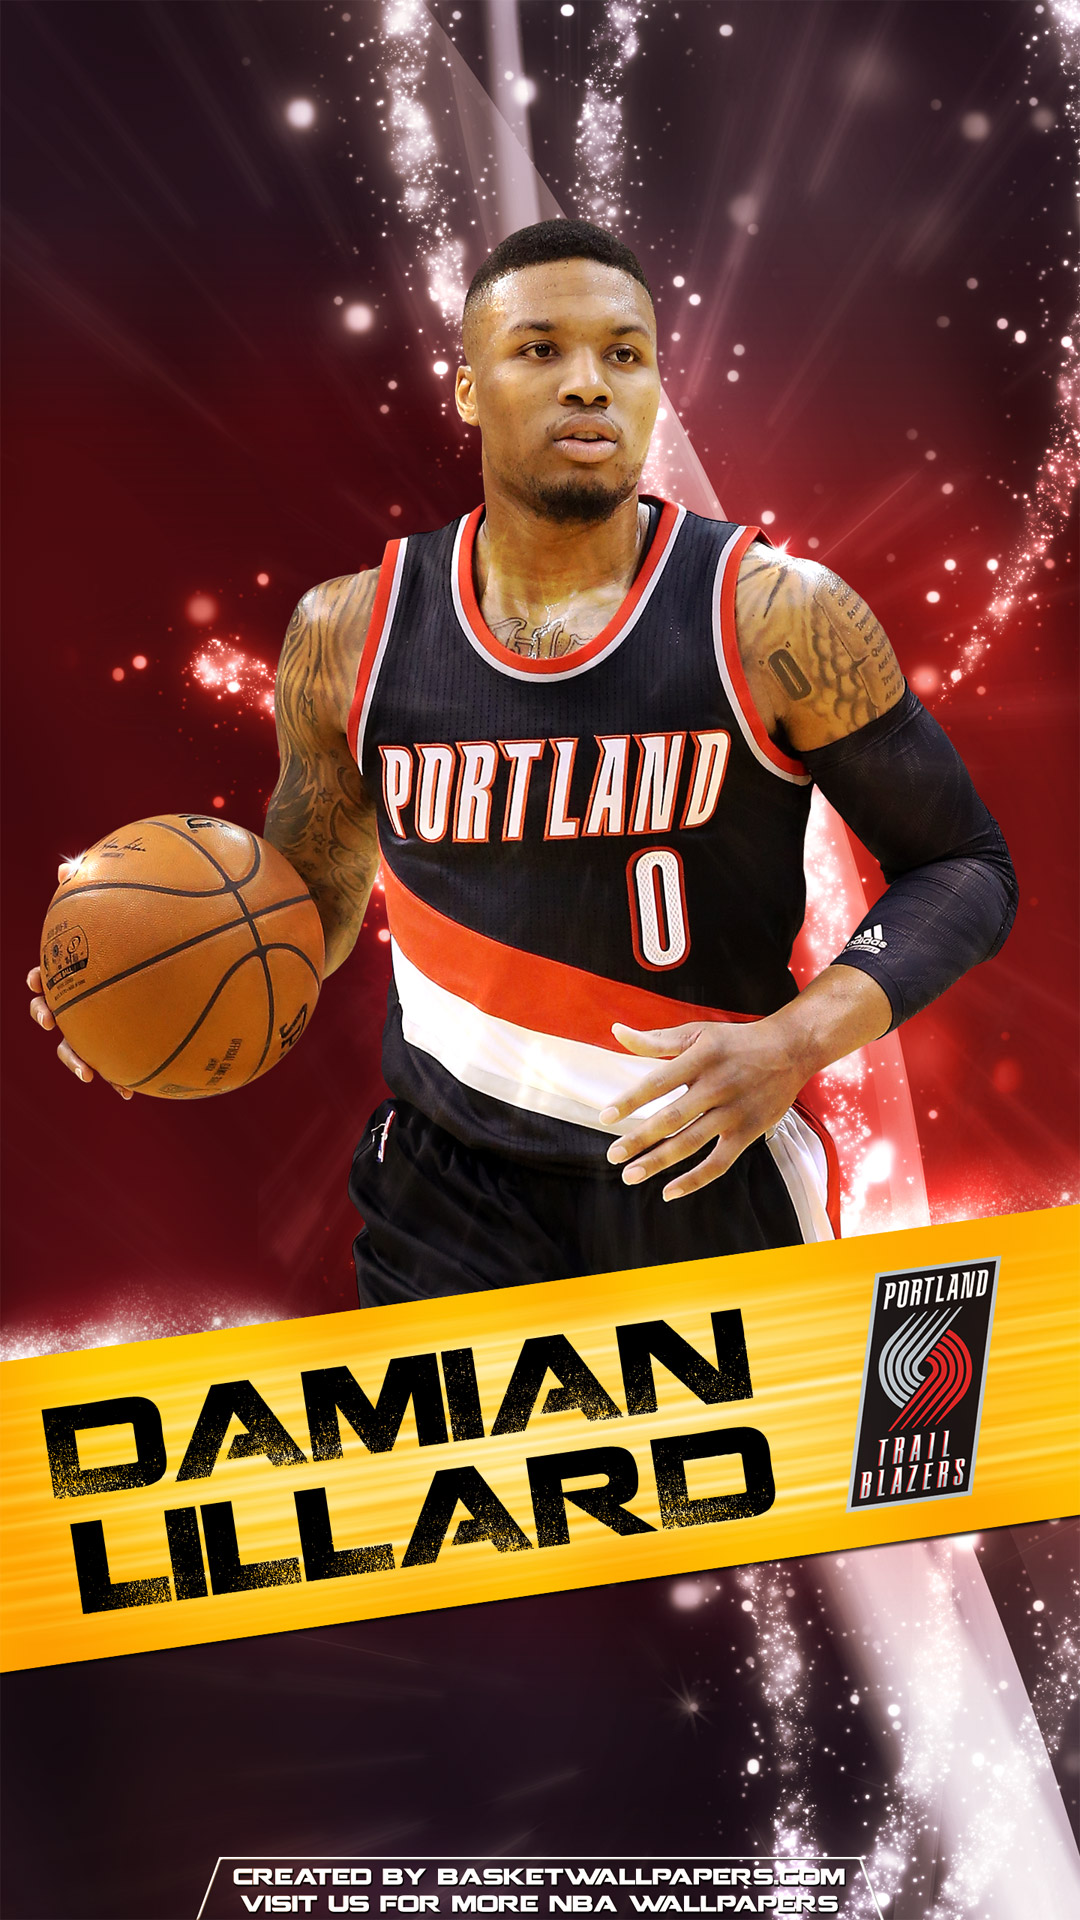 Okc Wallpaper Iphone Damian Lillard Portland Trail Blazers 2016 Mobile